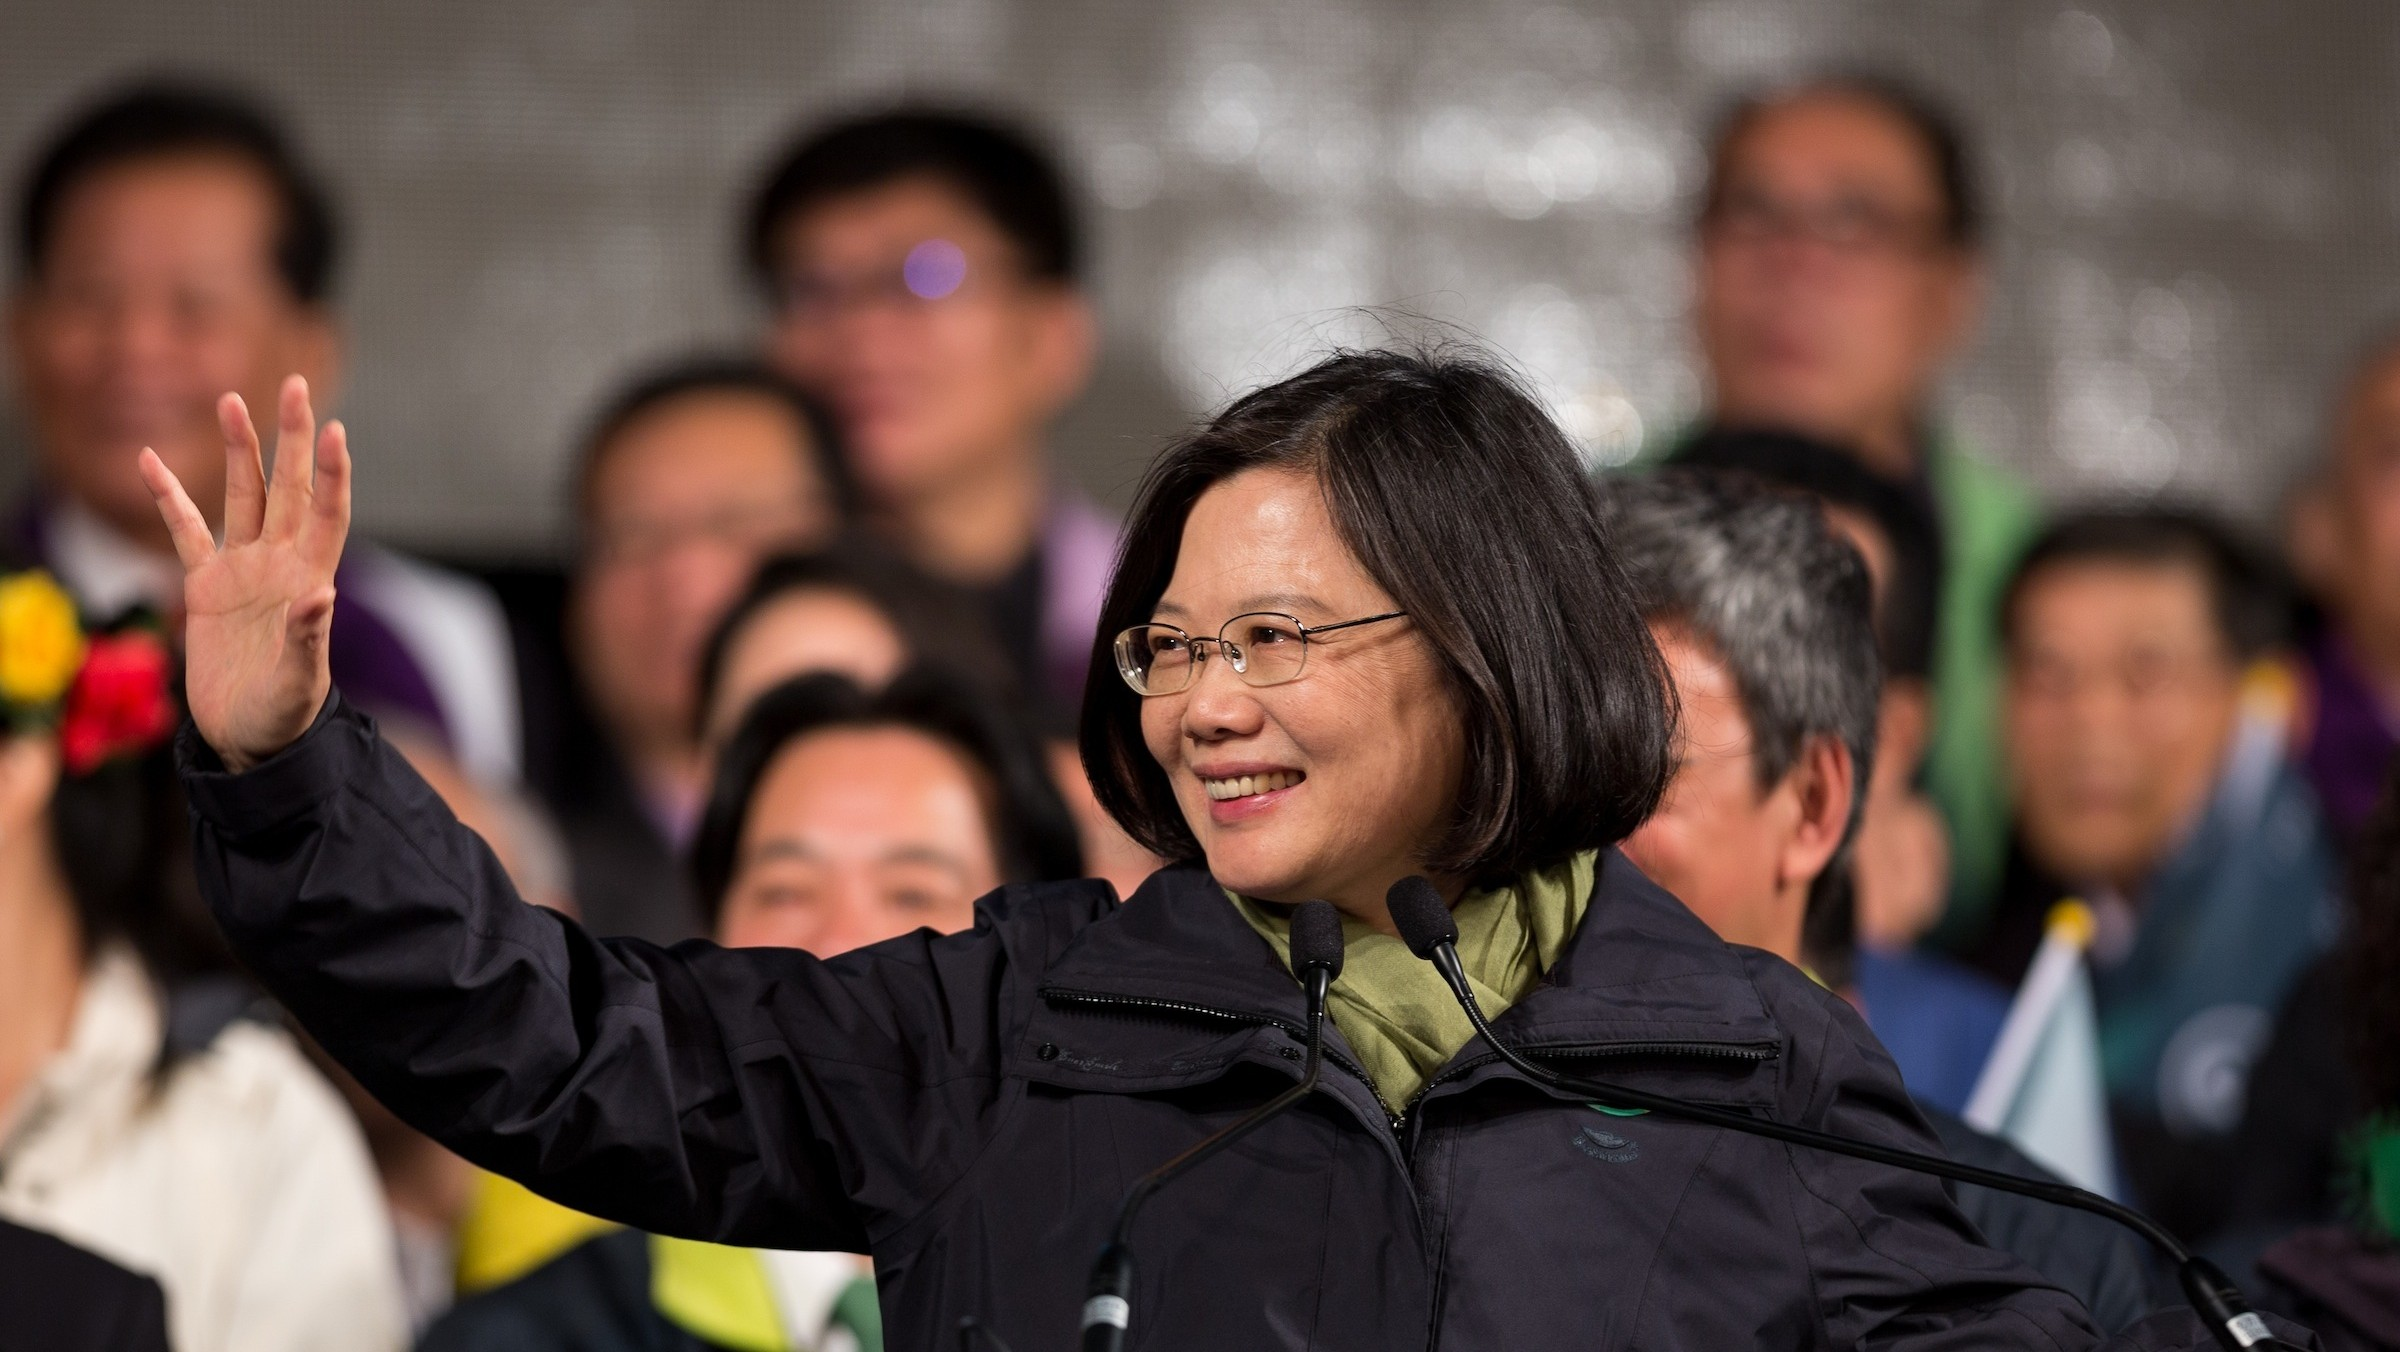 Taiwan Just Elected Its First Female President — And Now She Has to Deal With China